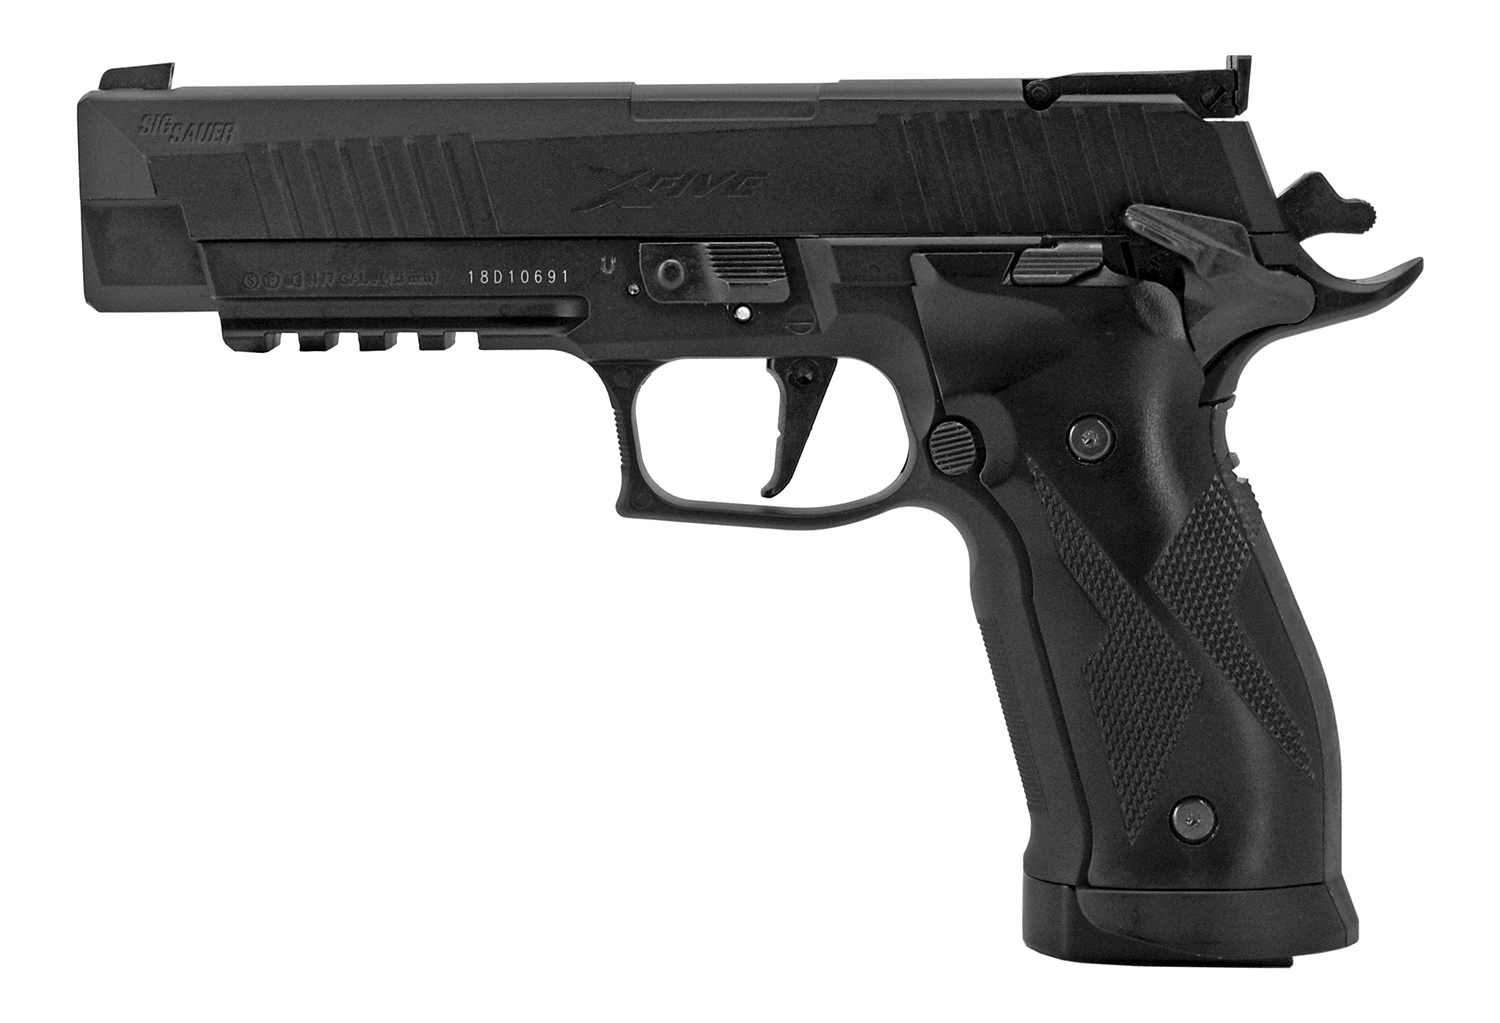 Sig-Sauer X-Five .177 Cal. Pellet Handgun Black - Refurbished